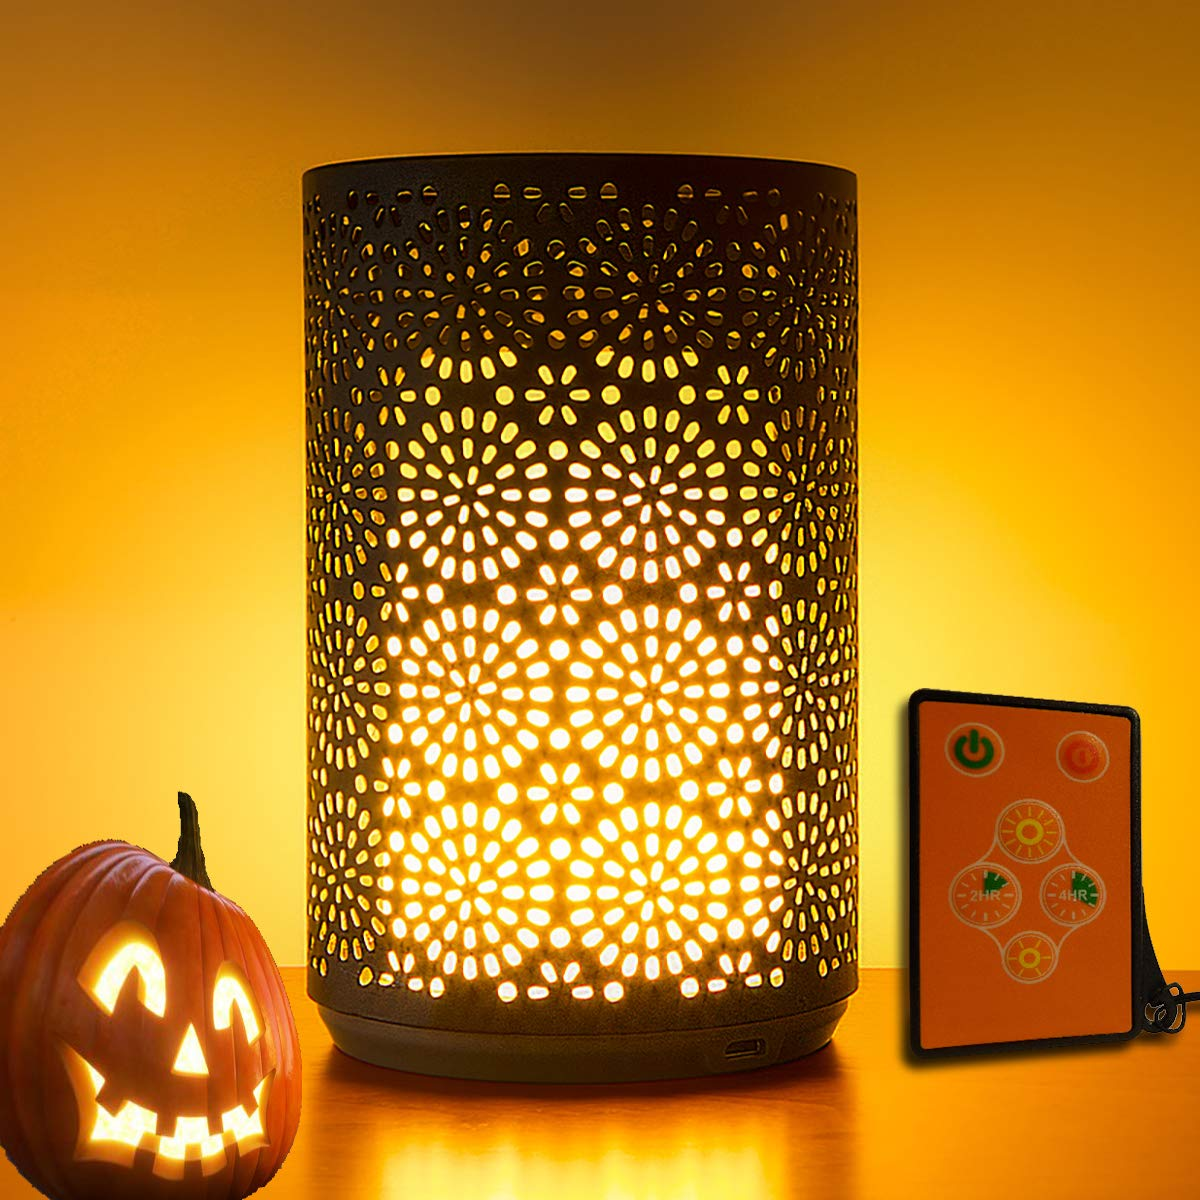 Pretty Portable Dancing Flame Table Lamp LED Home Decor, Vintage Romantic Flickering Flameless Light+Timer, Water-resistant, Built-in Rechargeable Battery+Magnetic Base, Votive halloween Flame Bulb